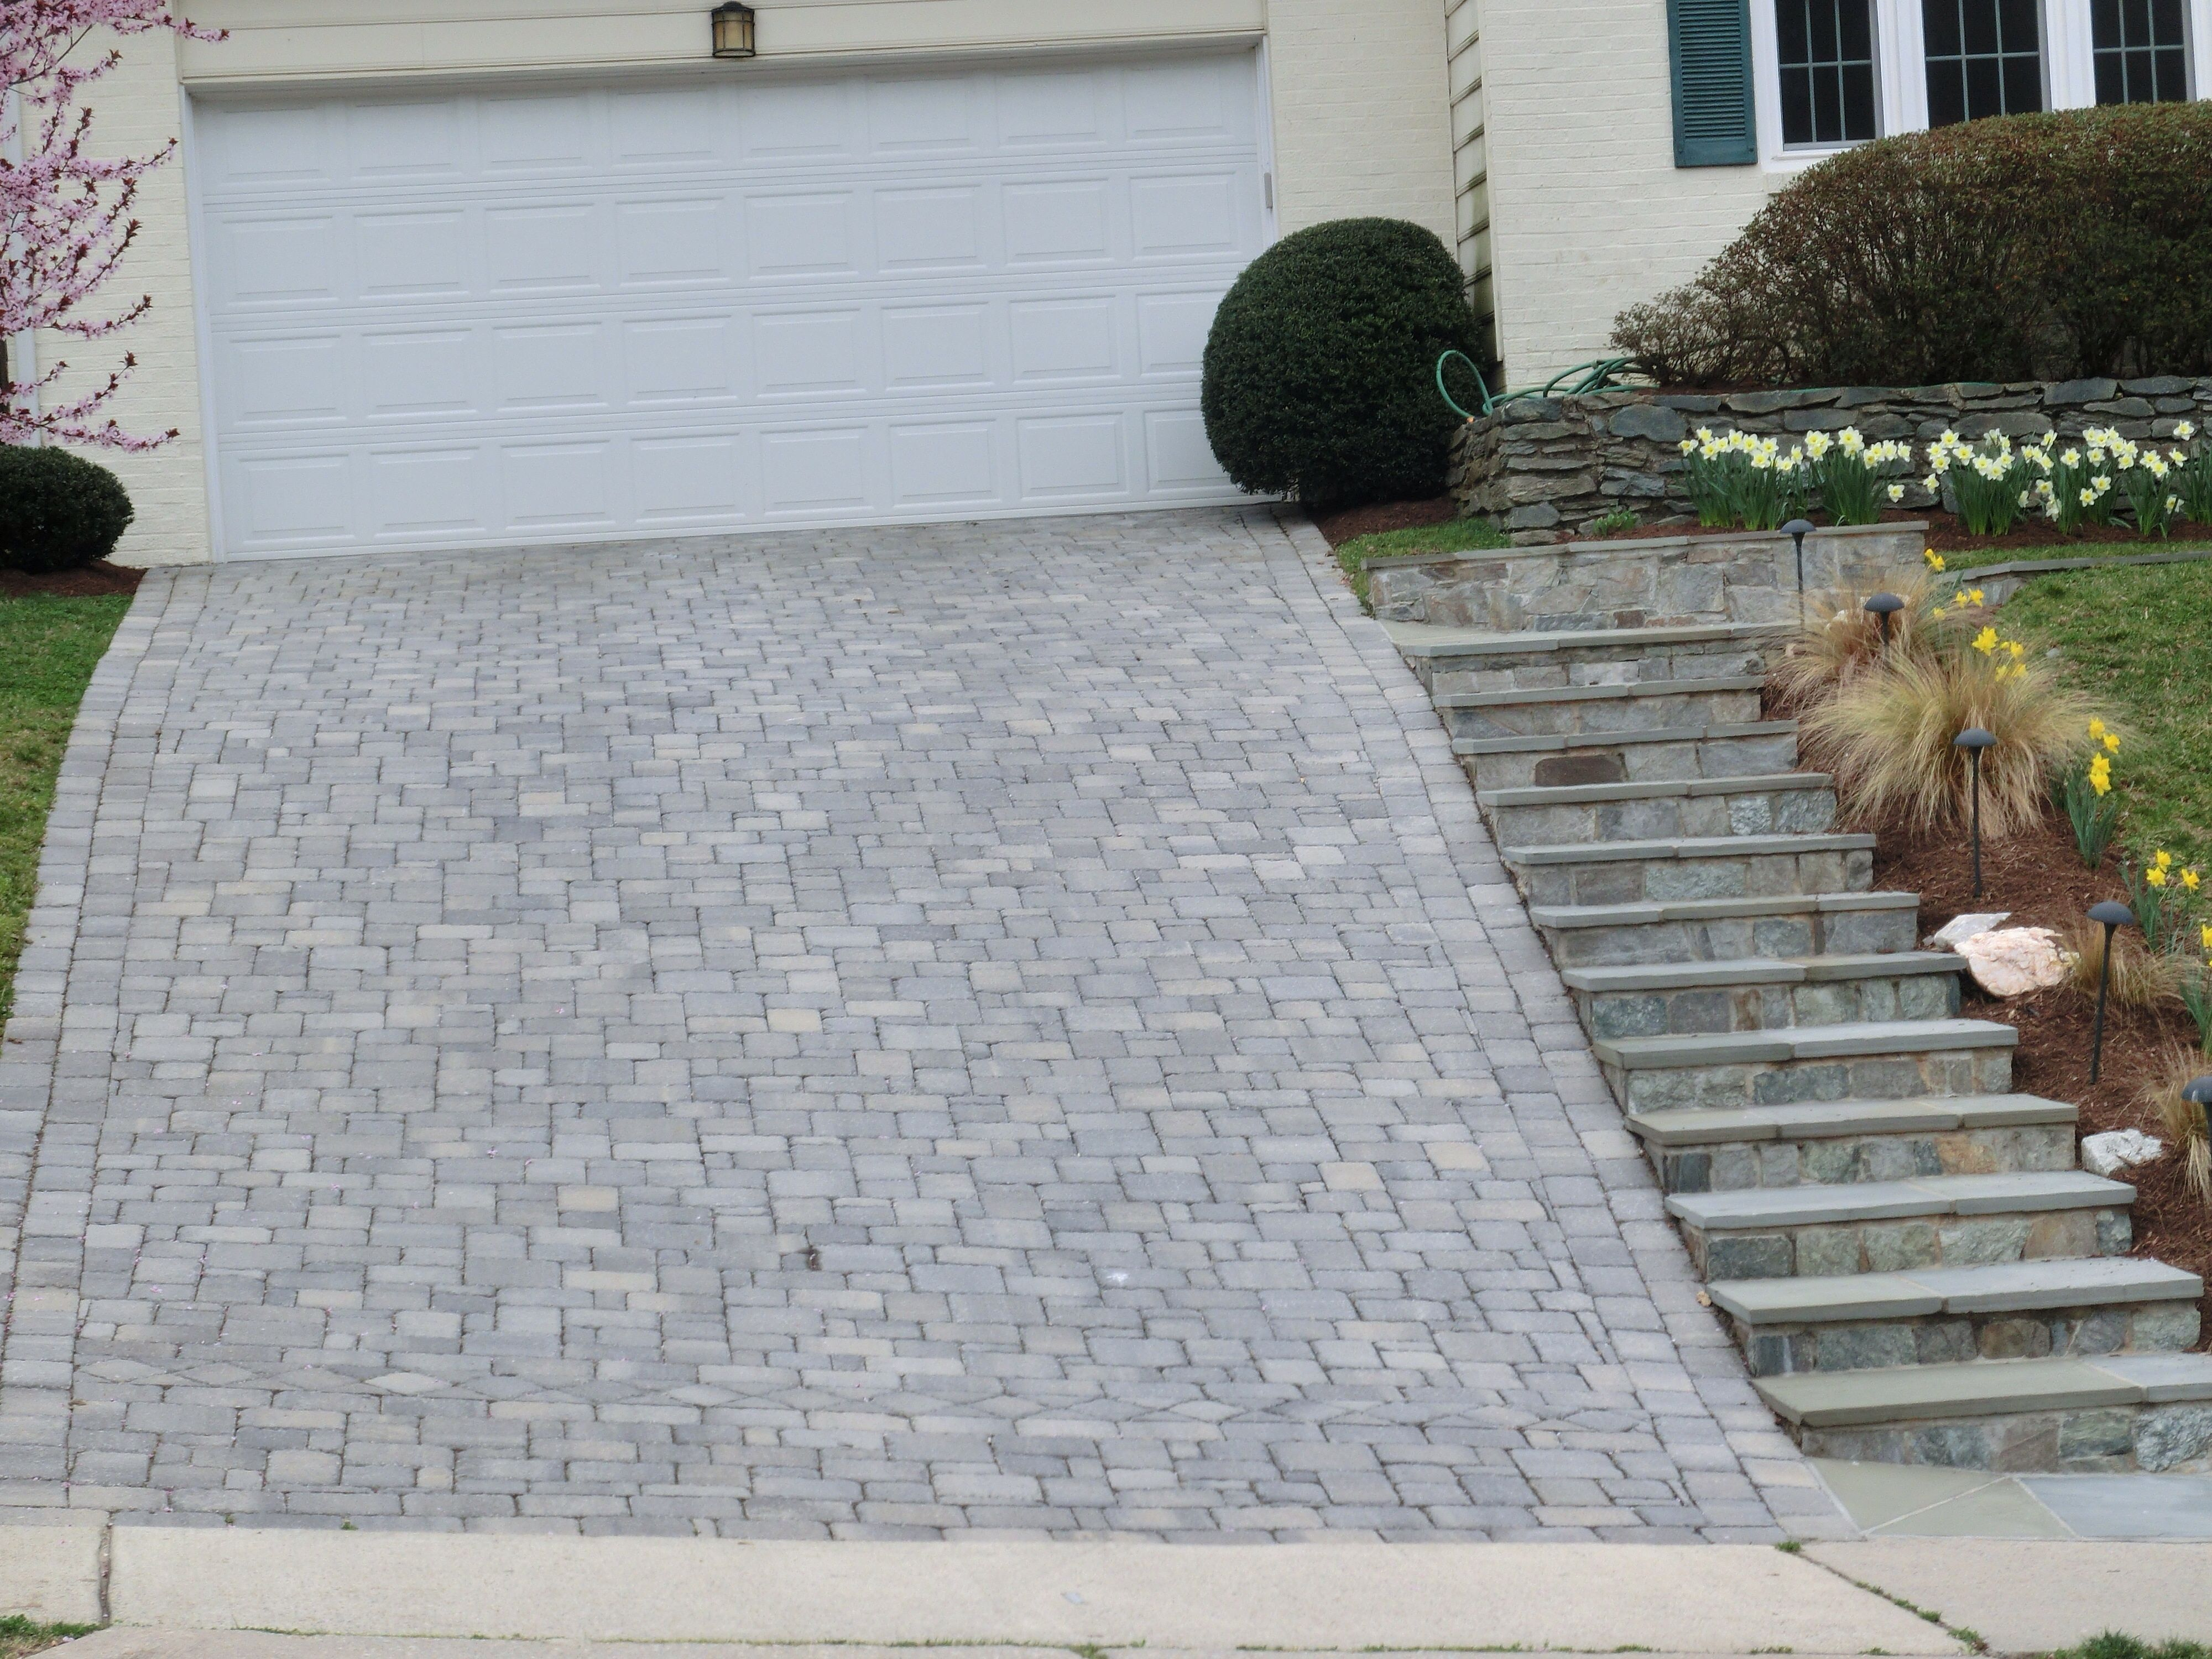 Sloped Paver Driveway With Steps Driveway Design Exterior Stairs Paver Driveway